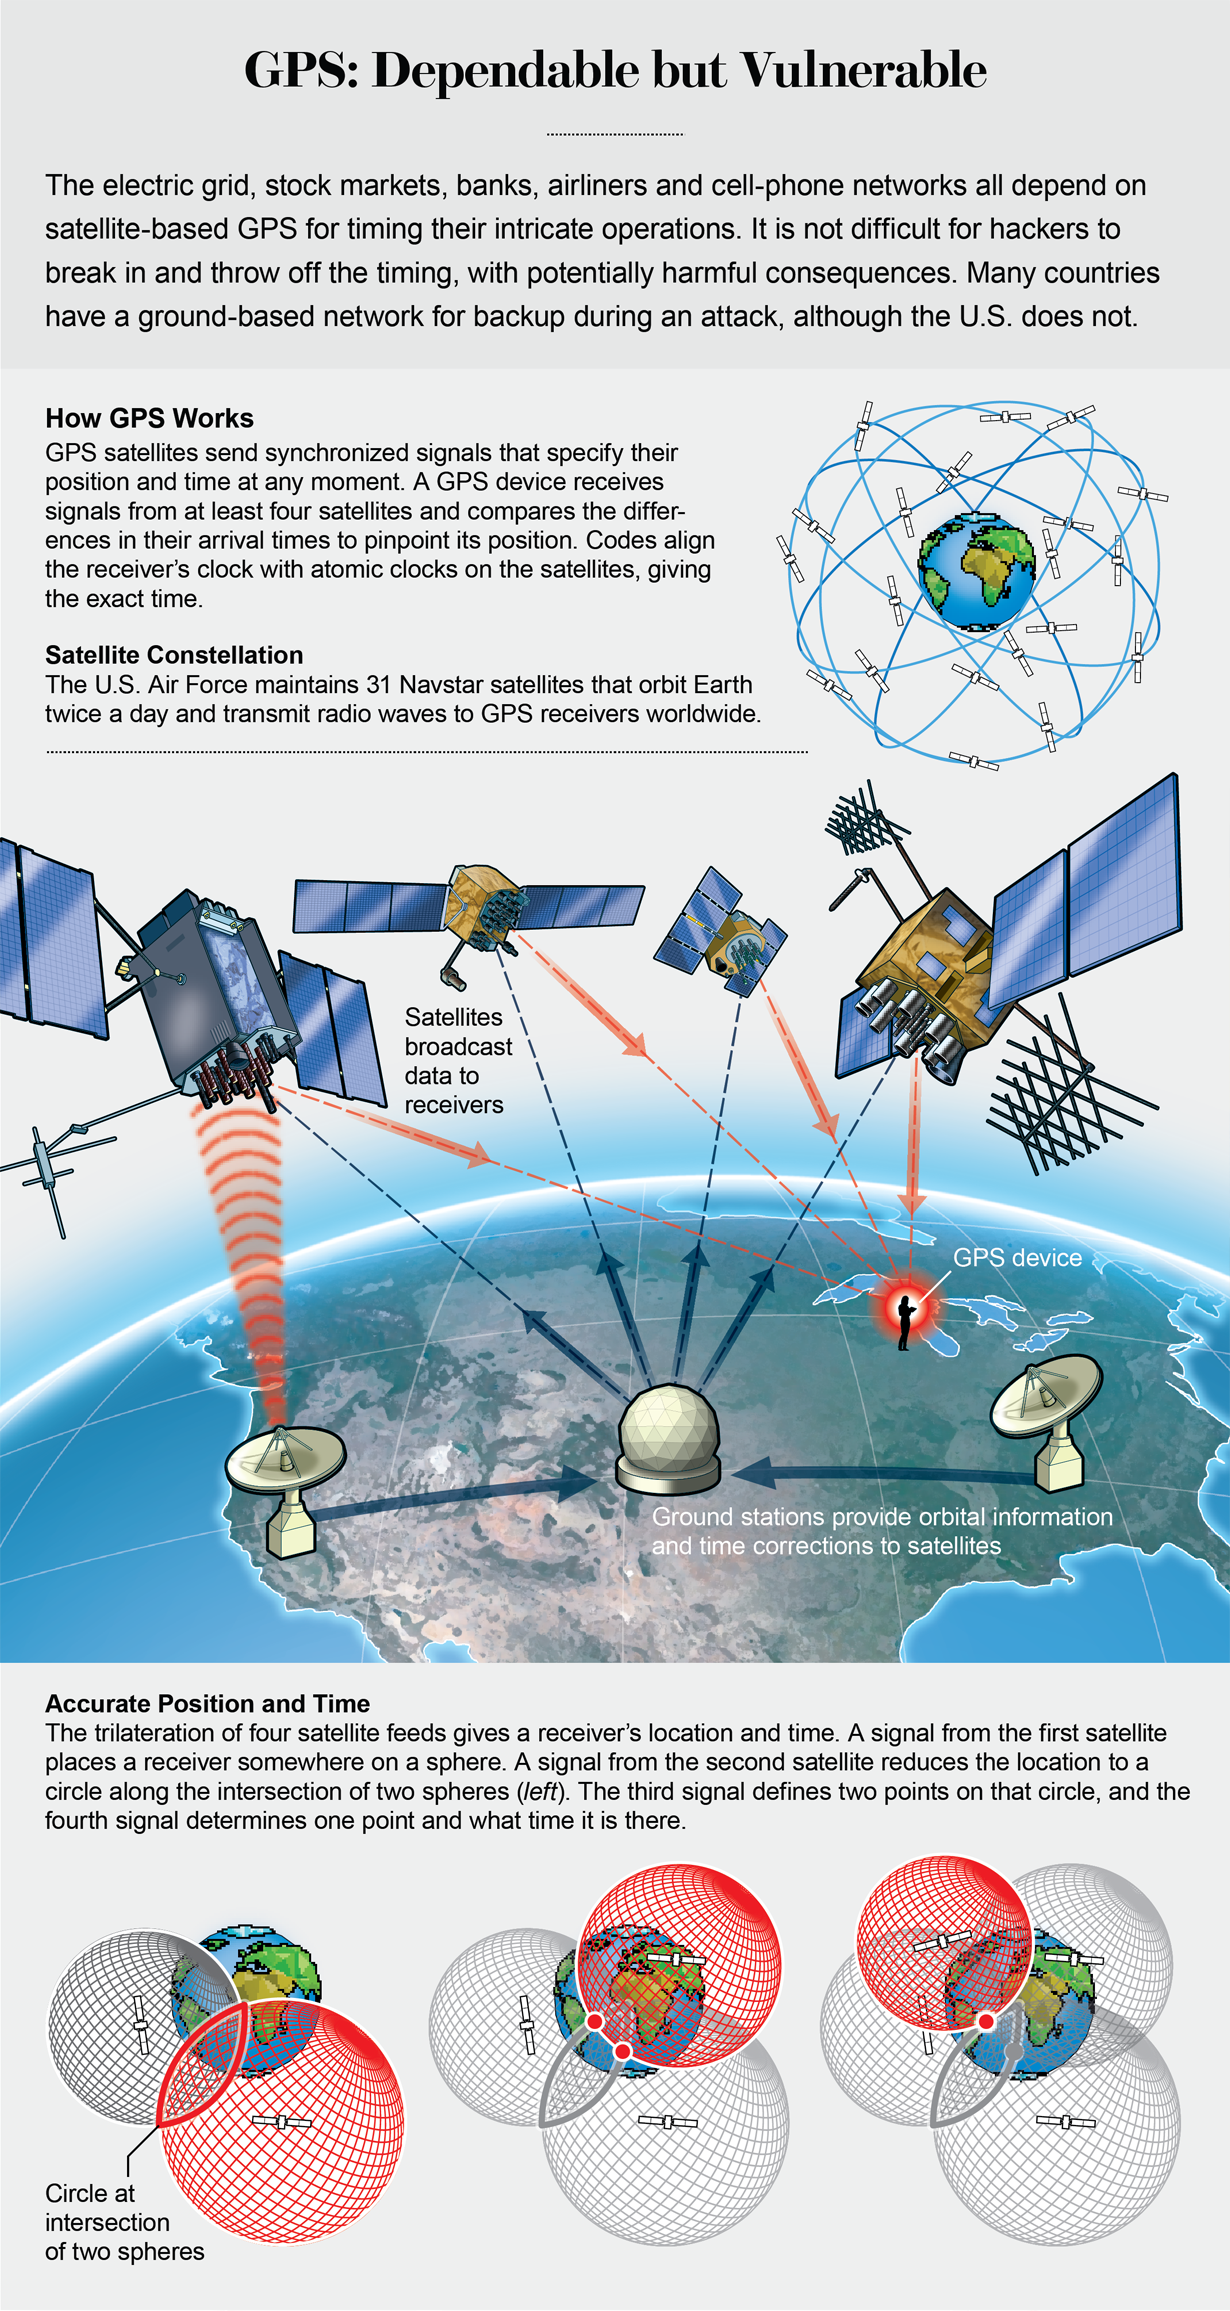 Graphic shows how GPS works: The trilateration of four satellite feeds allows a receiver to calculate its location and time.